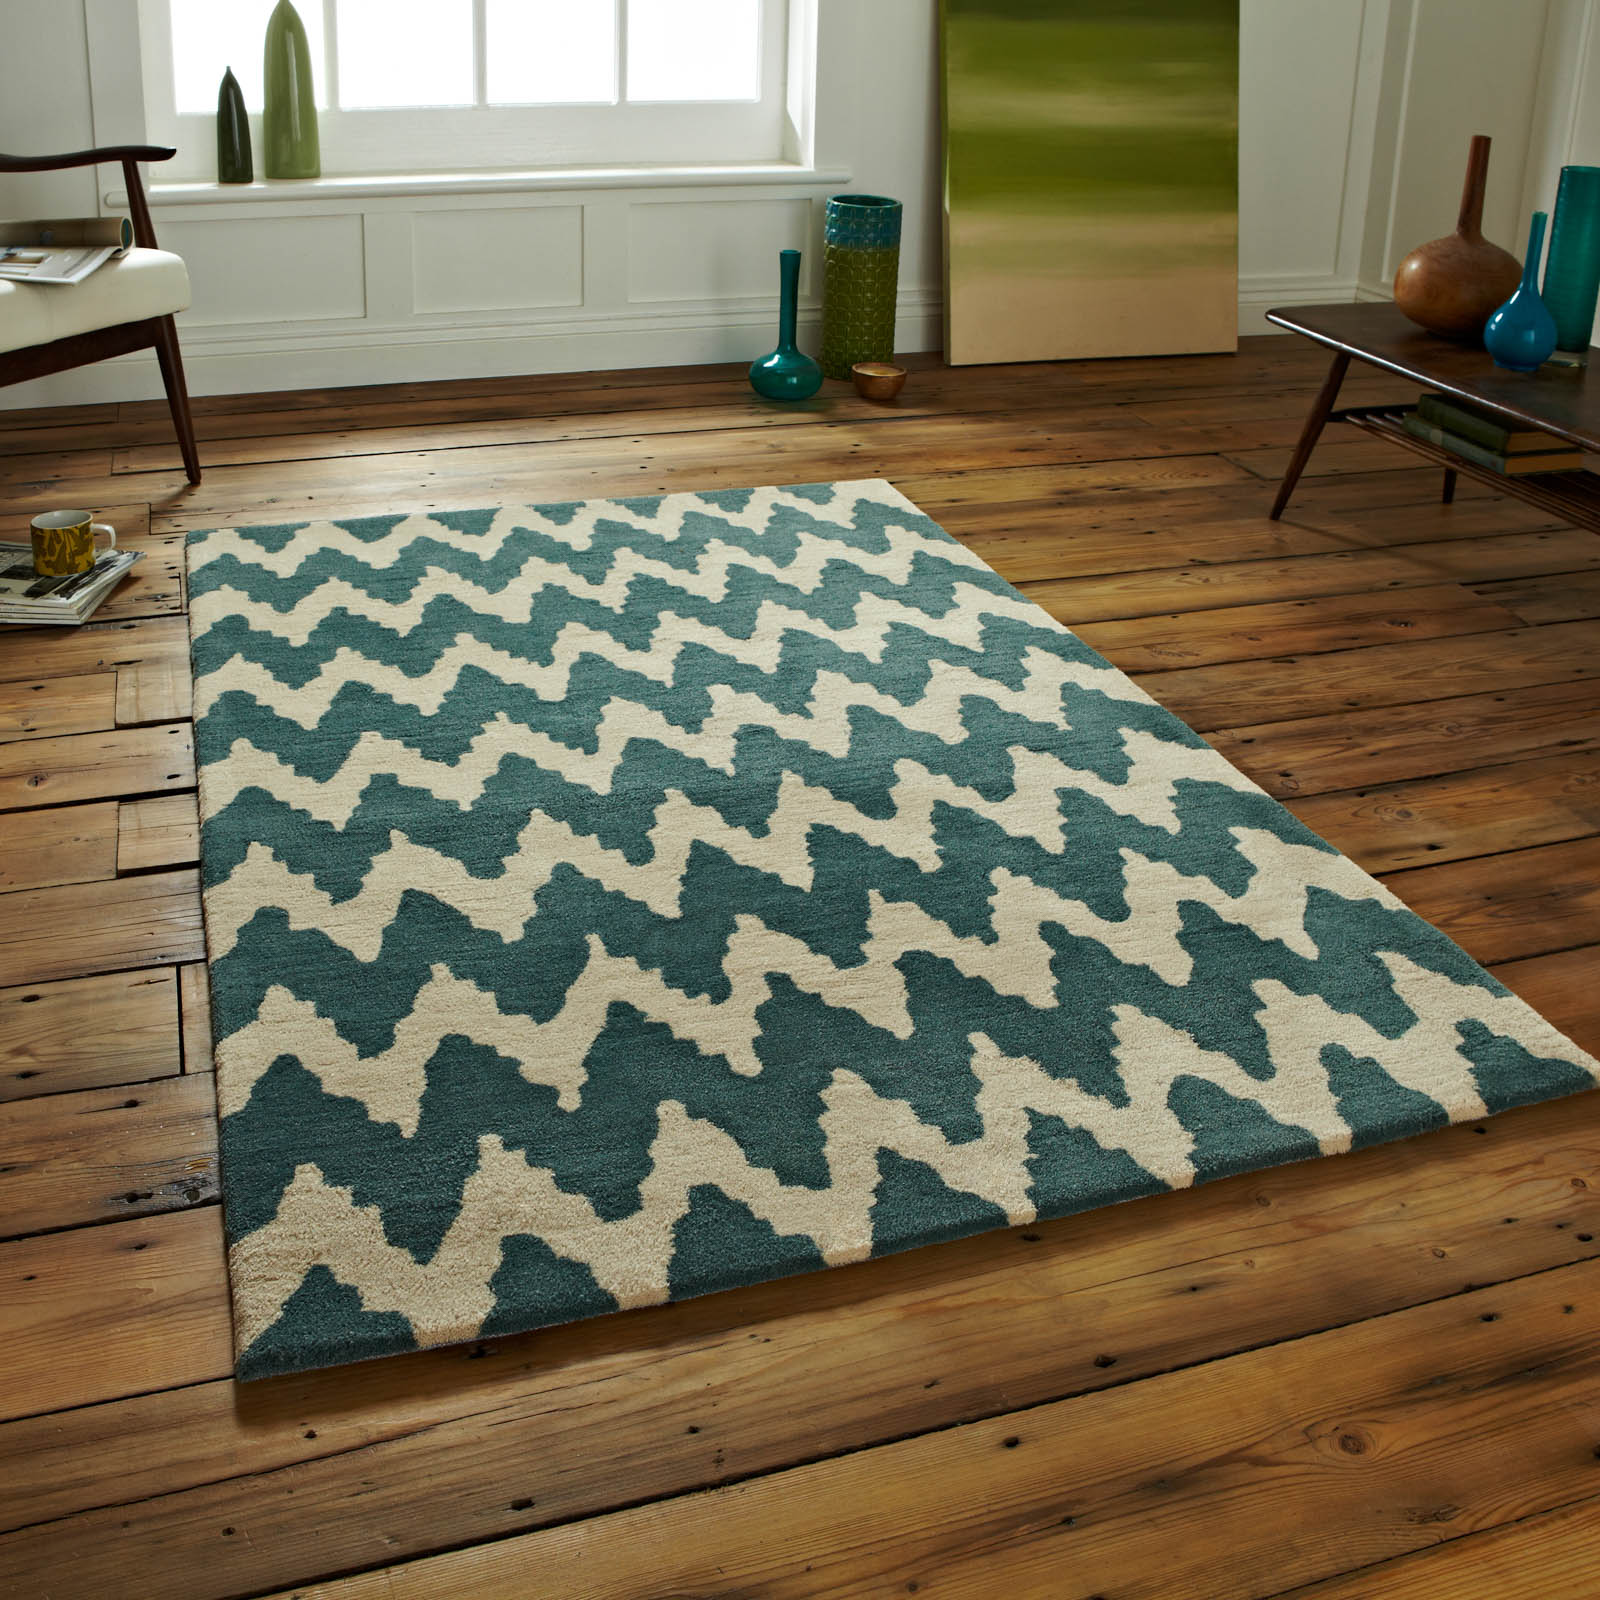 Hong Kong Rugs HK867 In Teal Beige